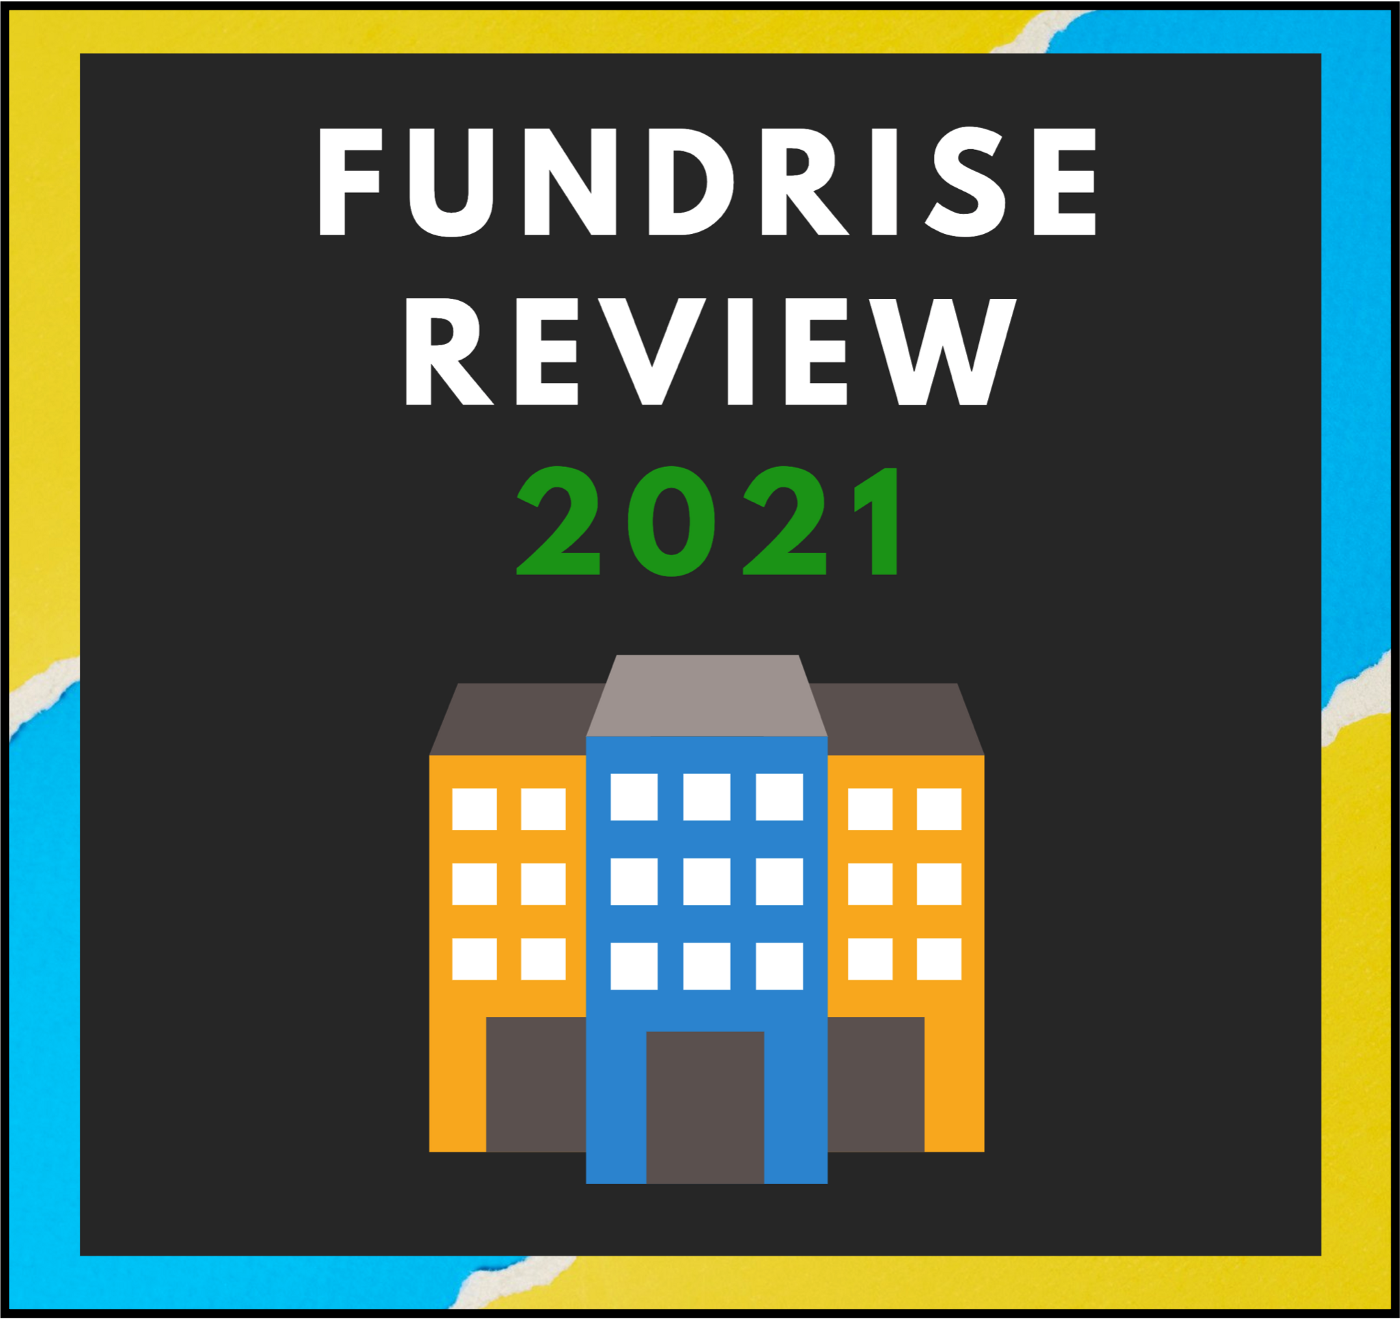 Fundrise Review 2021